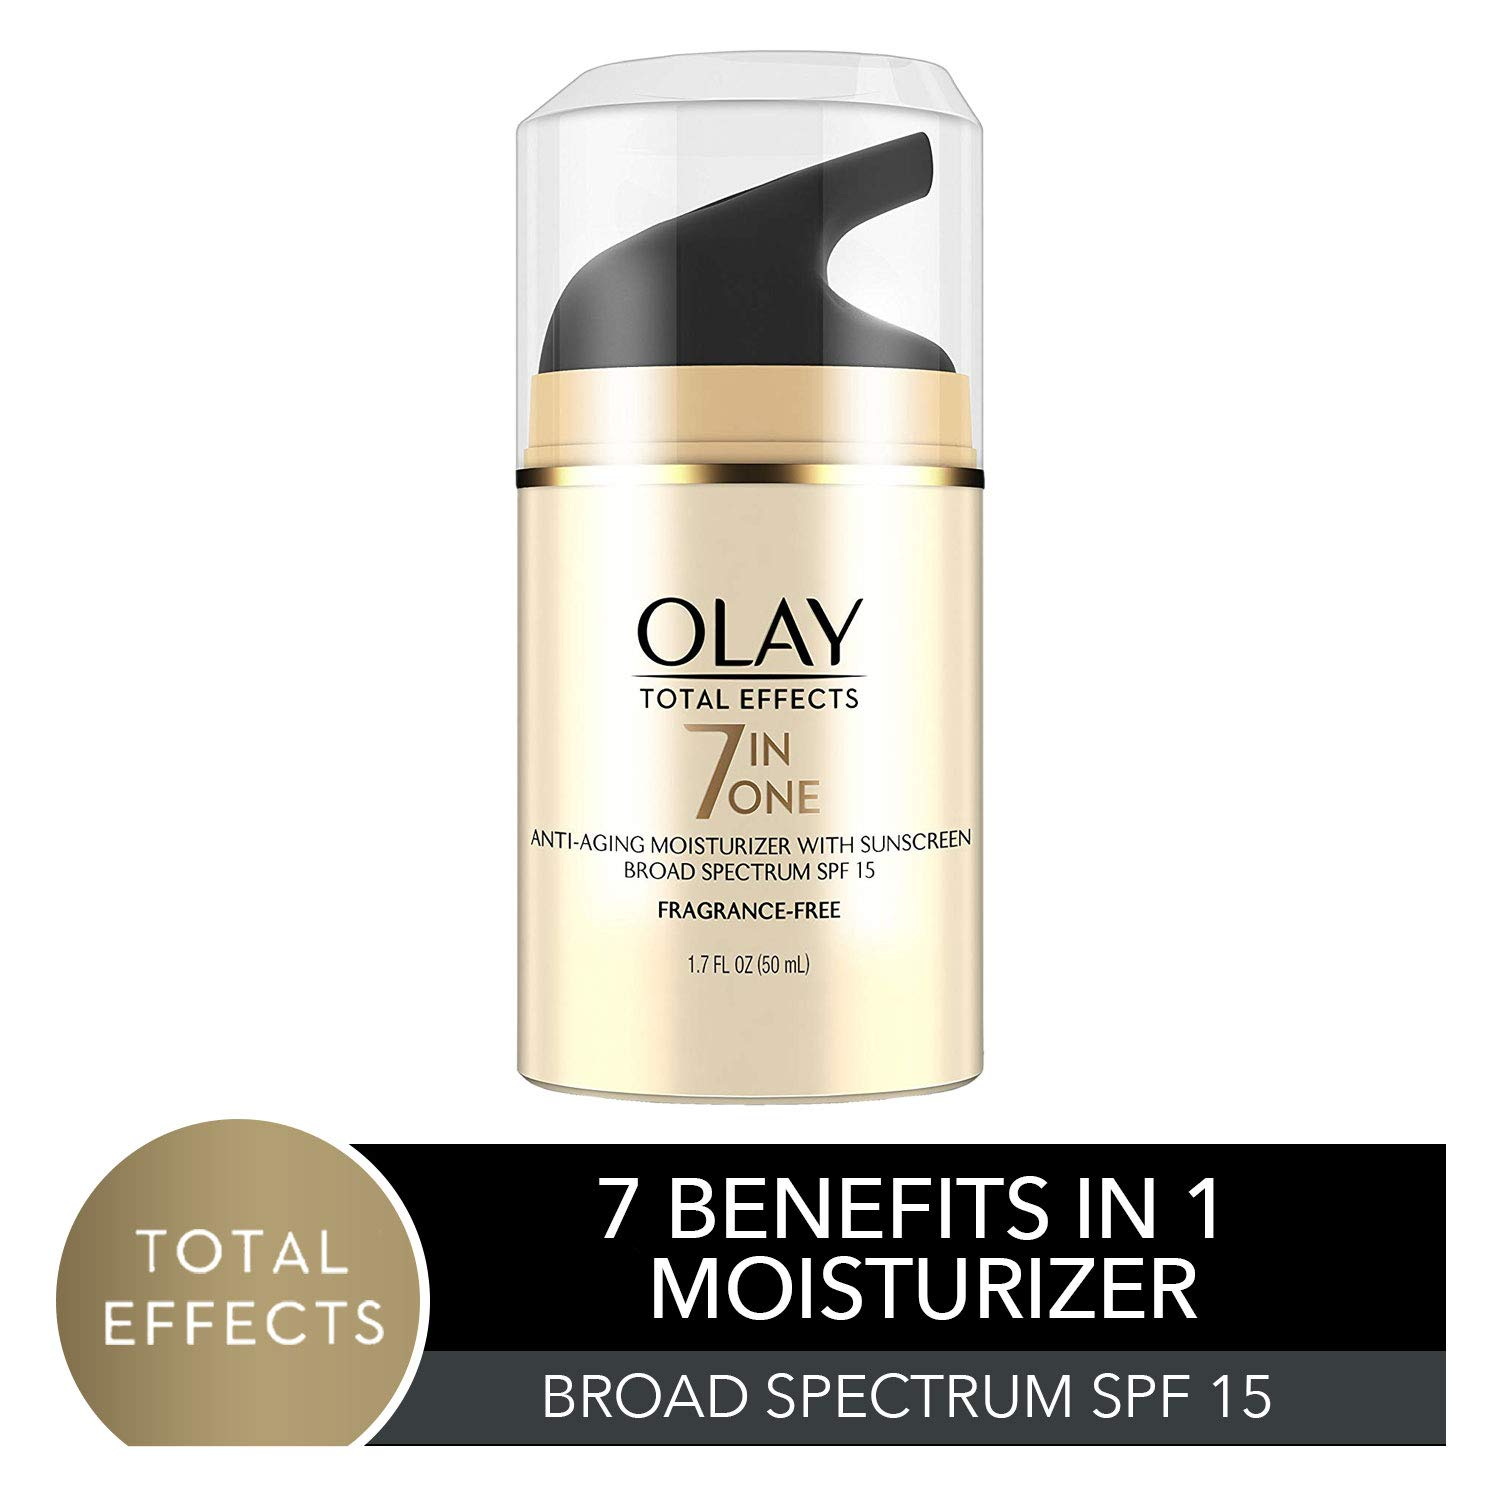 Face Moisturizer by Olay Total Effects Anti-Aging Face Moisturizer with SPF 15, Fragrance-Free 1.7 fl oz by Olay